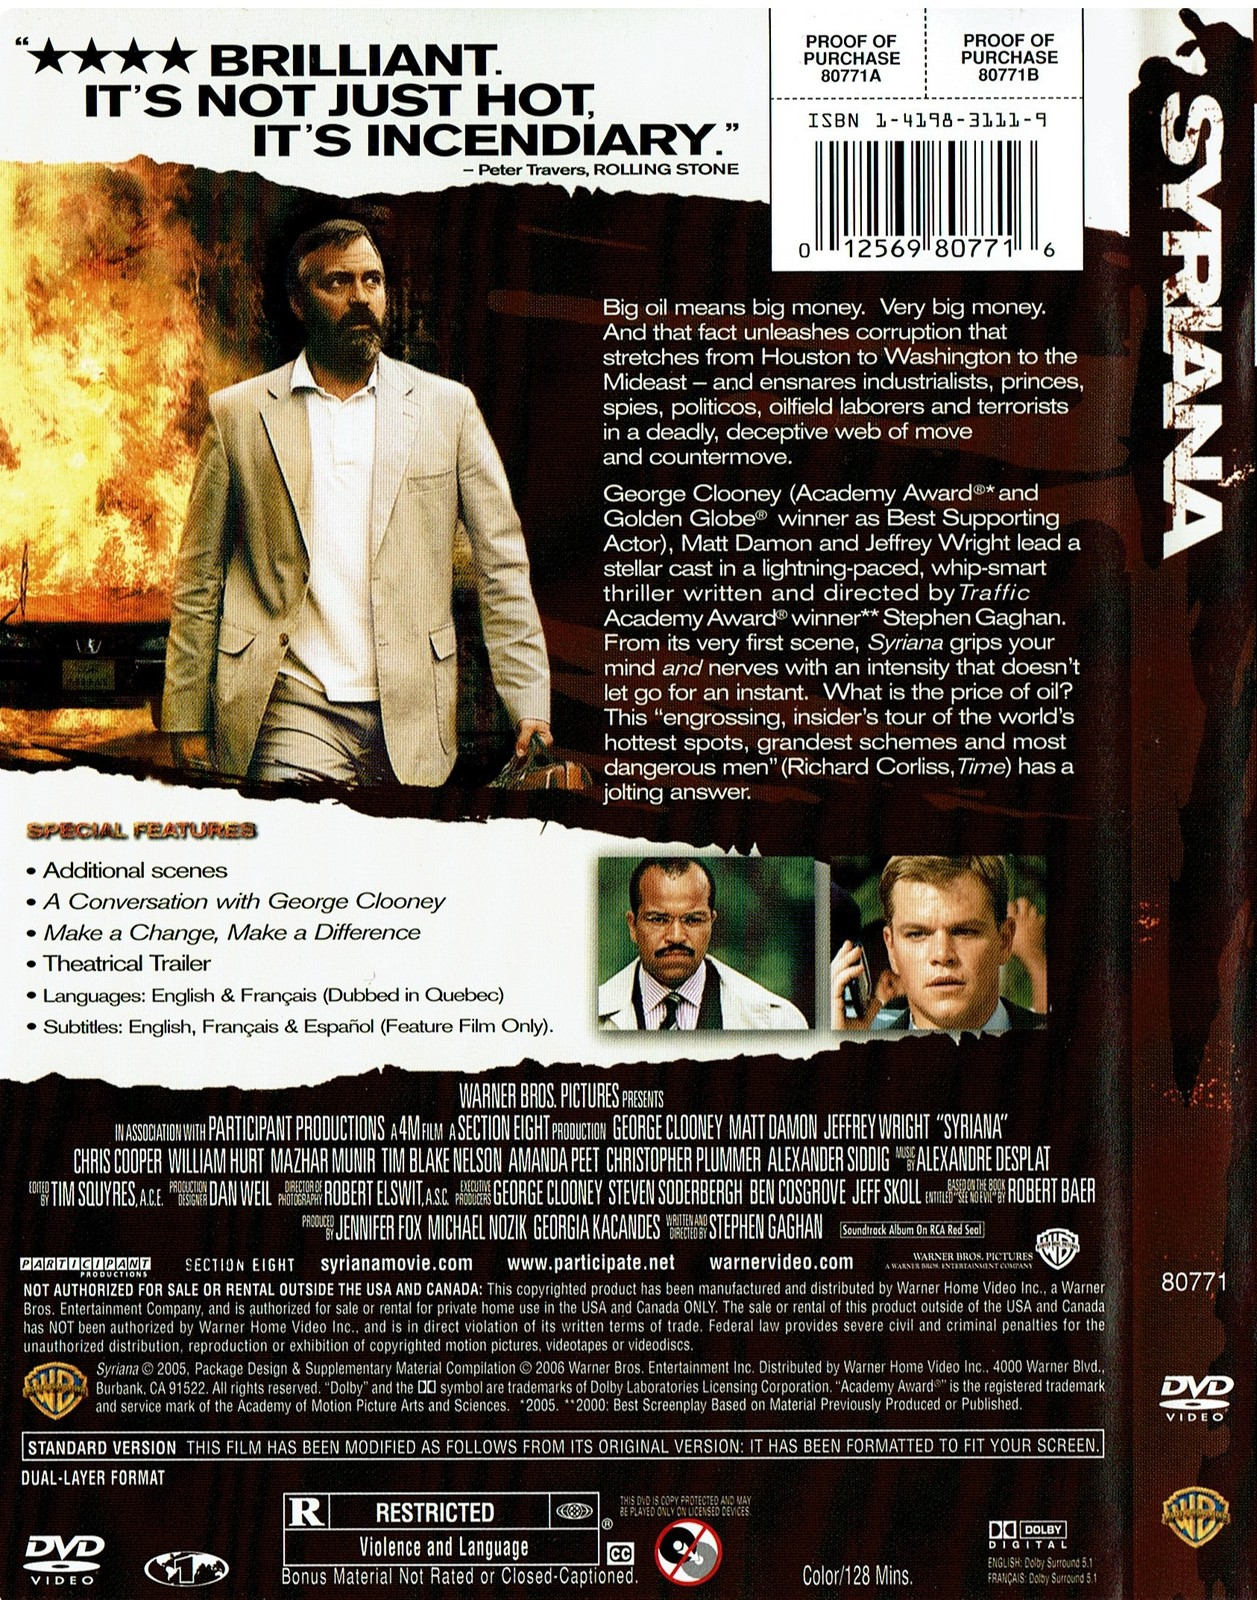 Syriana (Full Screen Edition) DVD, 2006, Matt Damon, George Clooney